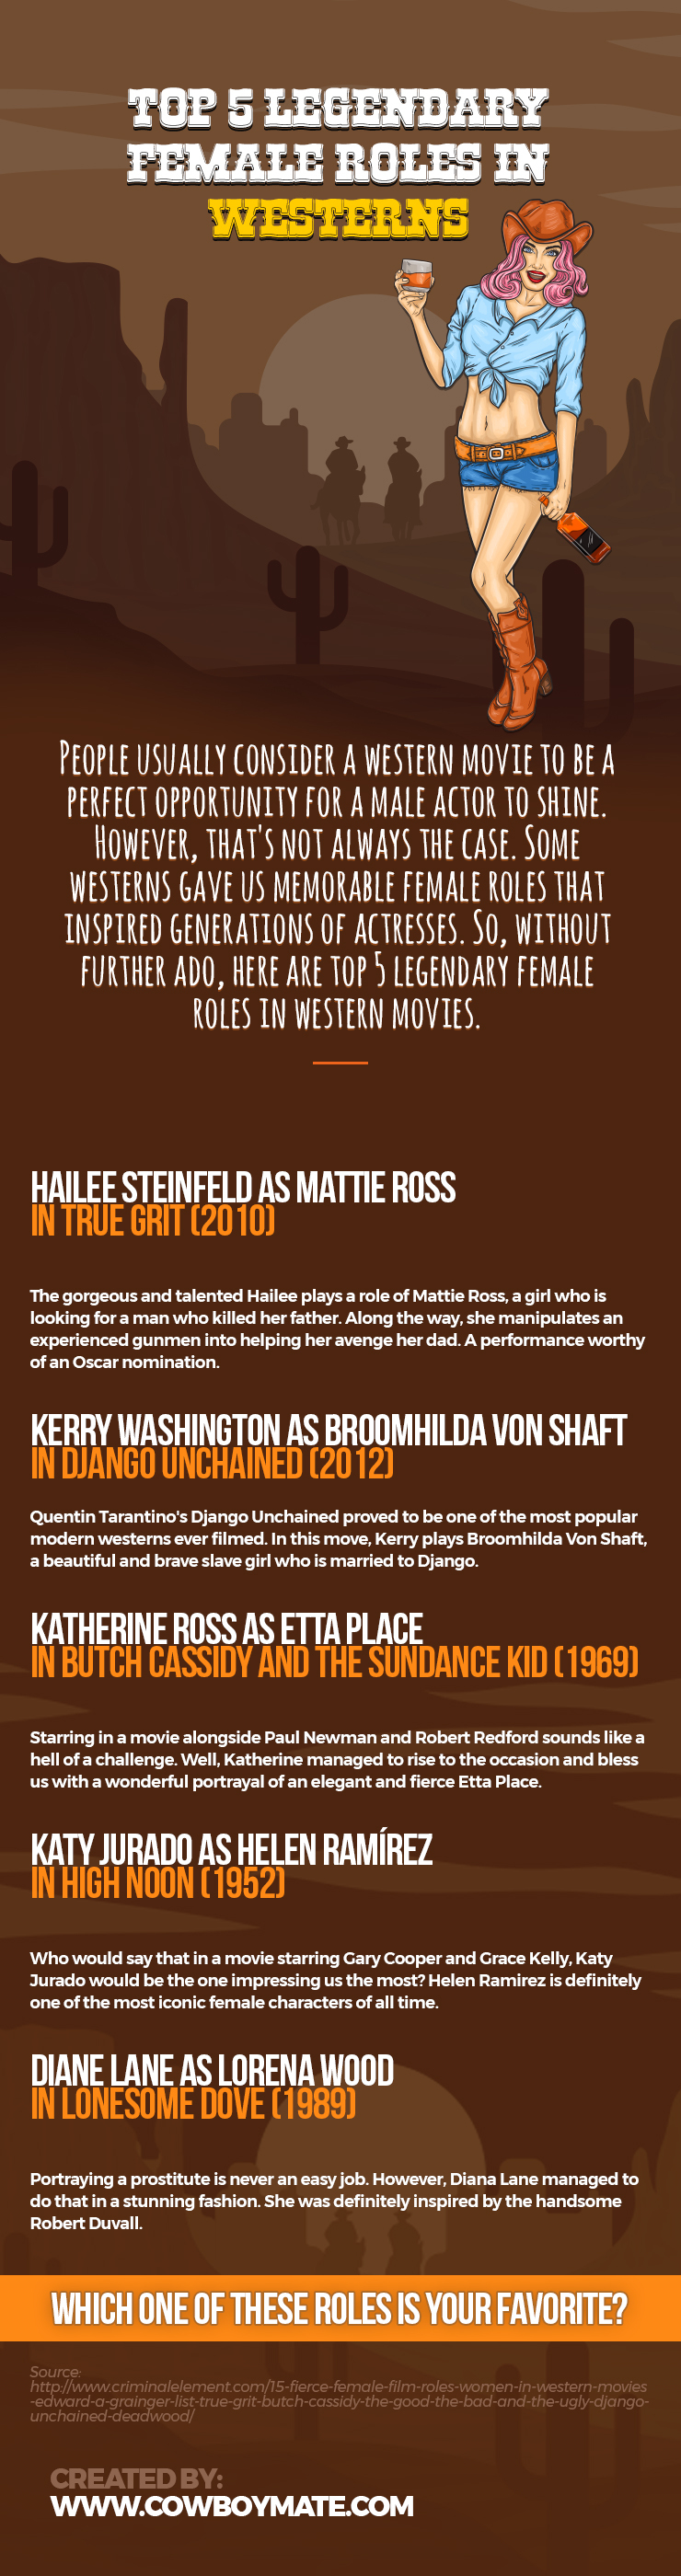 Top 5 Legendary Female Roles in Westerns